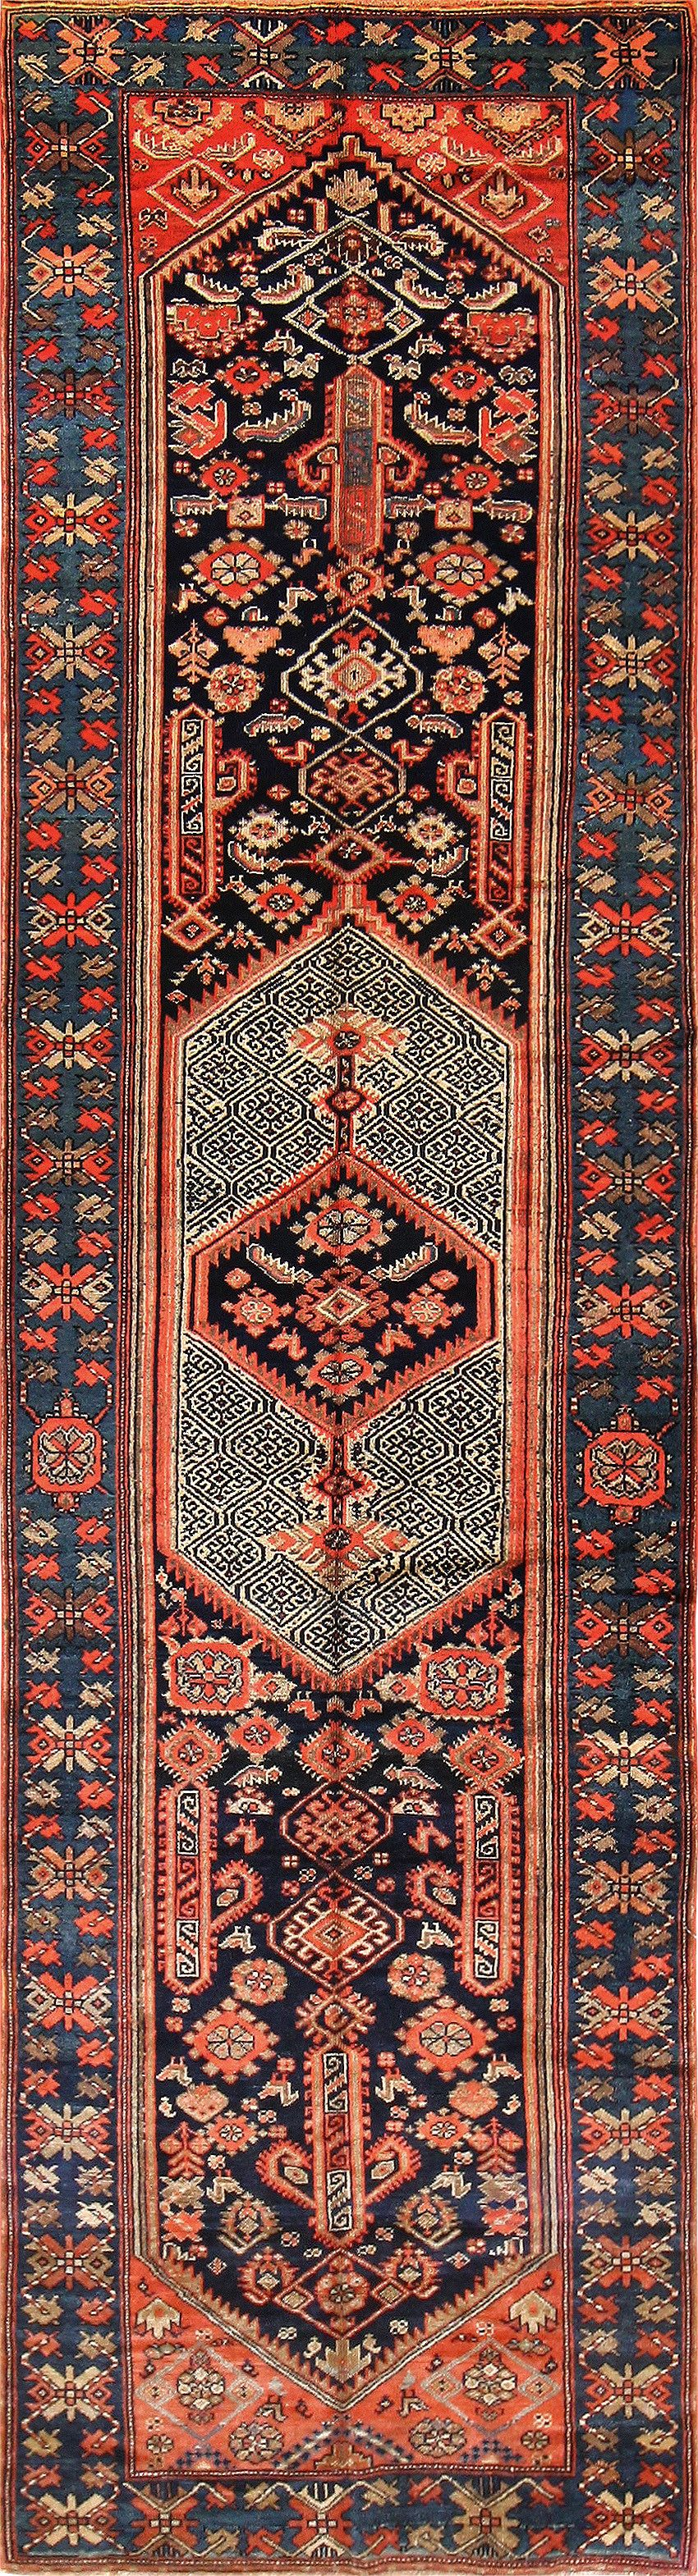 antique persian malayer runner rug 50352 nazmiyal DWHHJUL